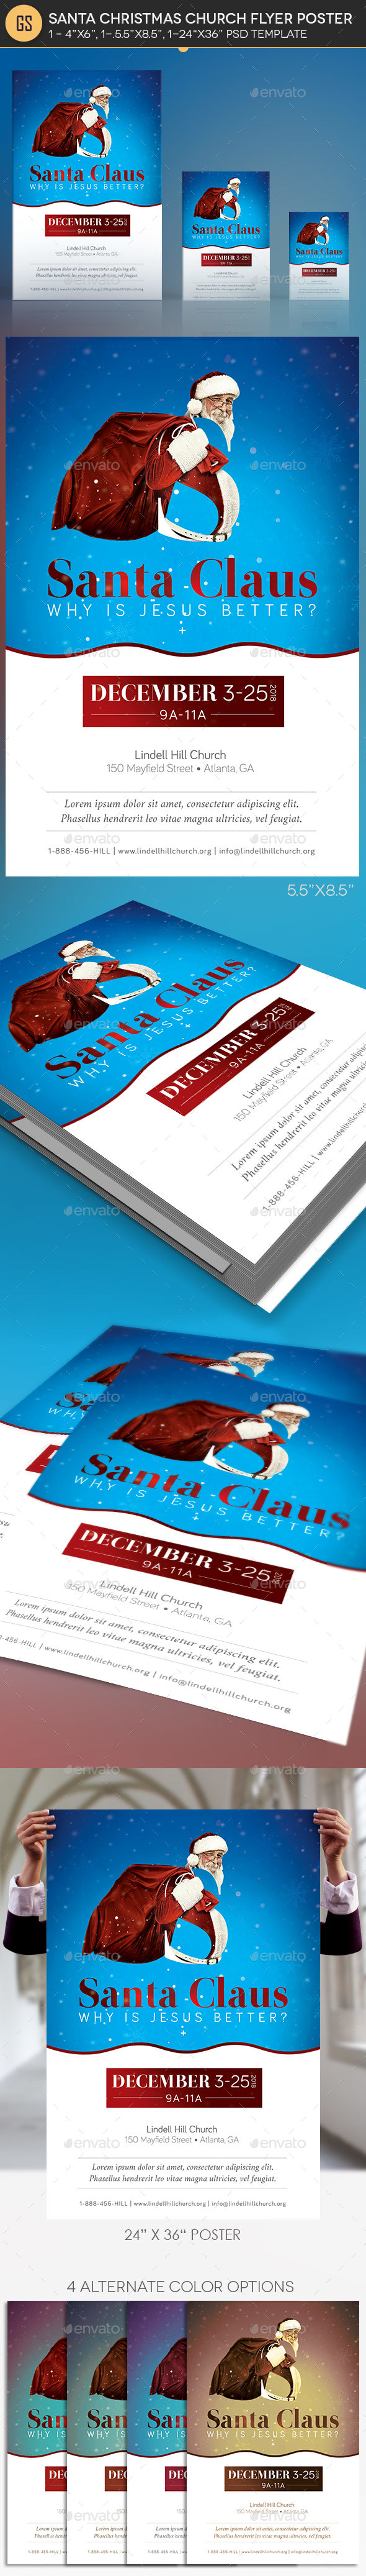 Santa Christmas Church Flyer Poster Template - Church Flyers